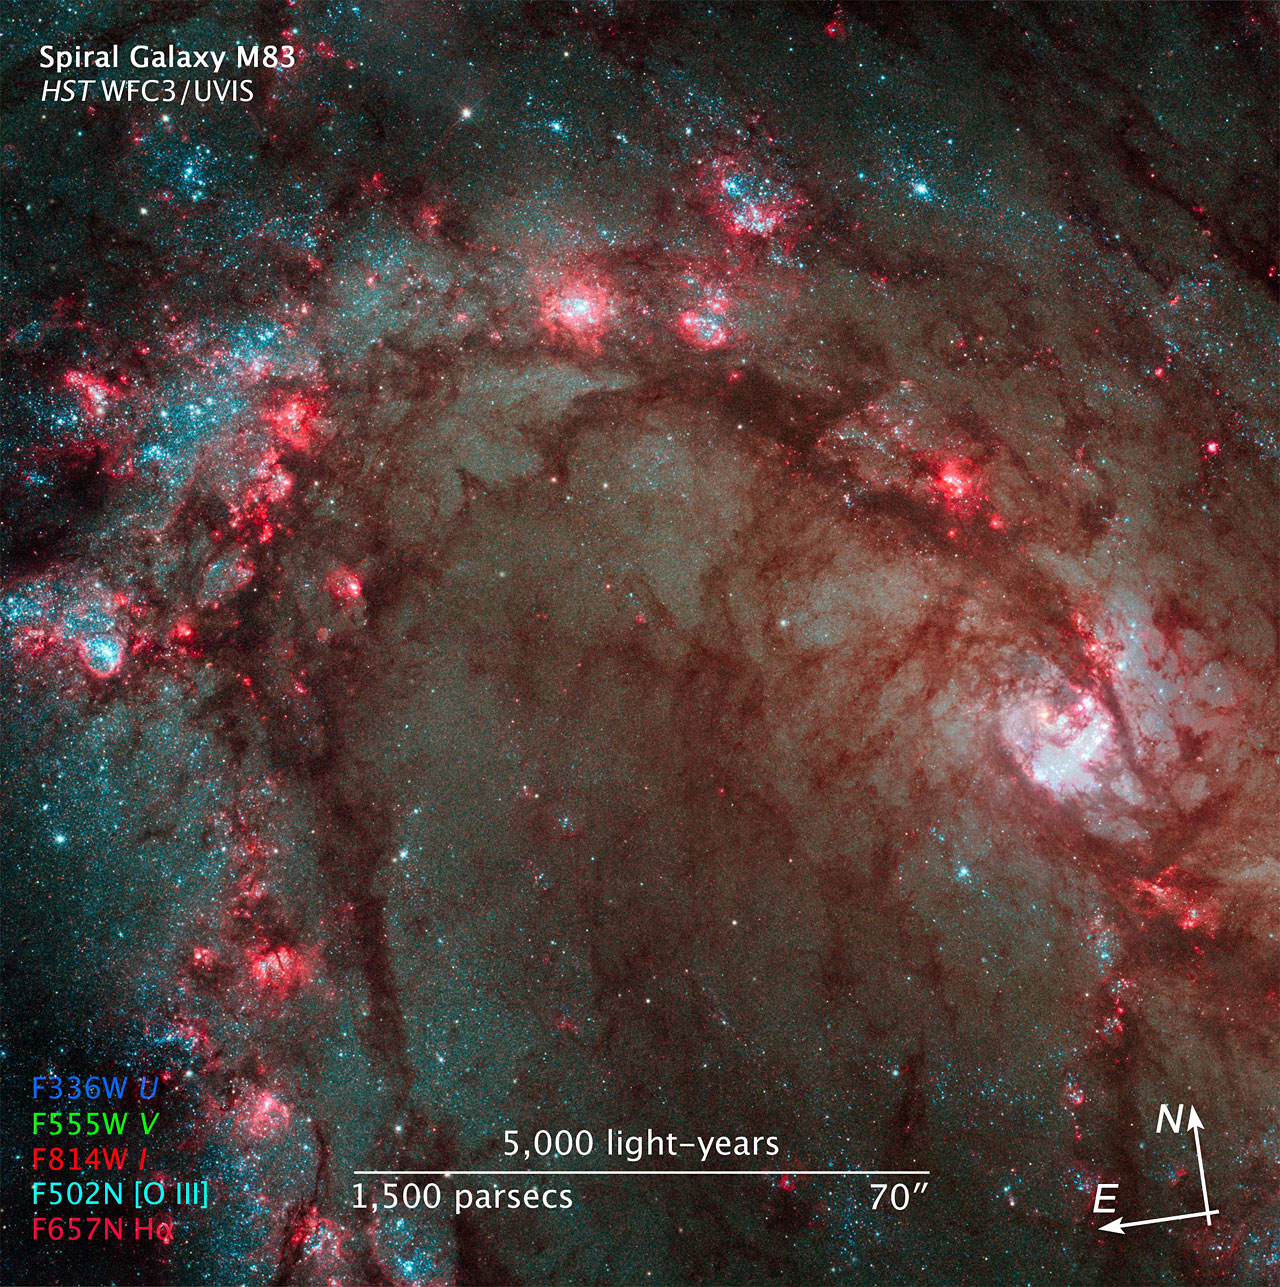 Compass and Scale Image of M83